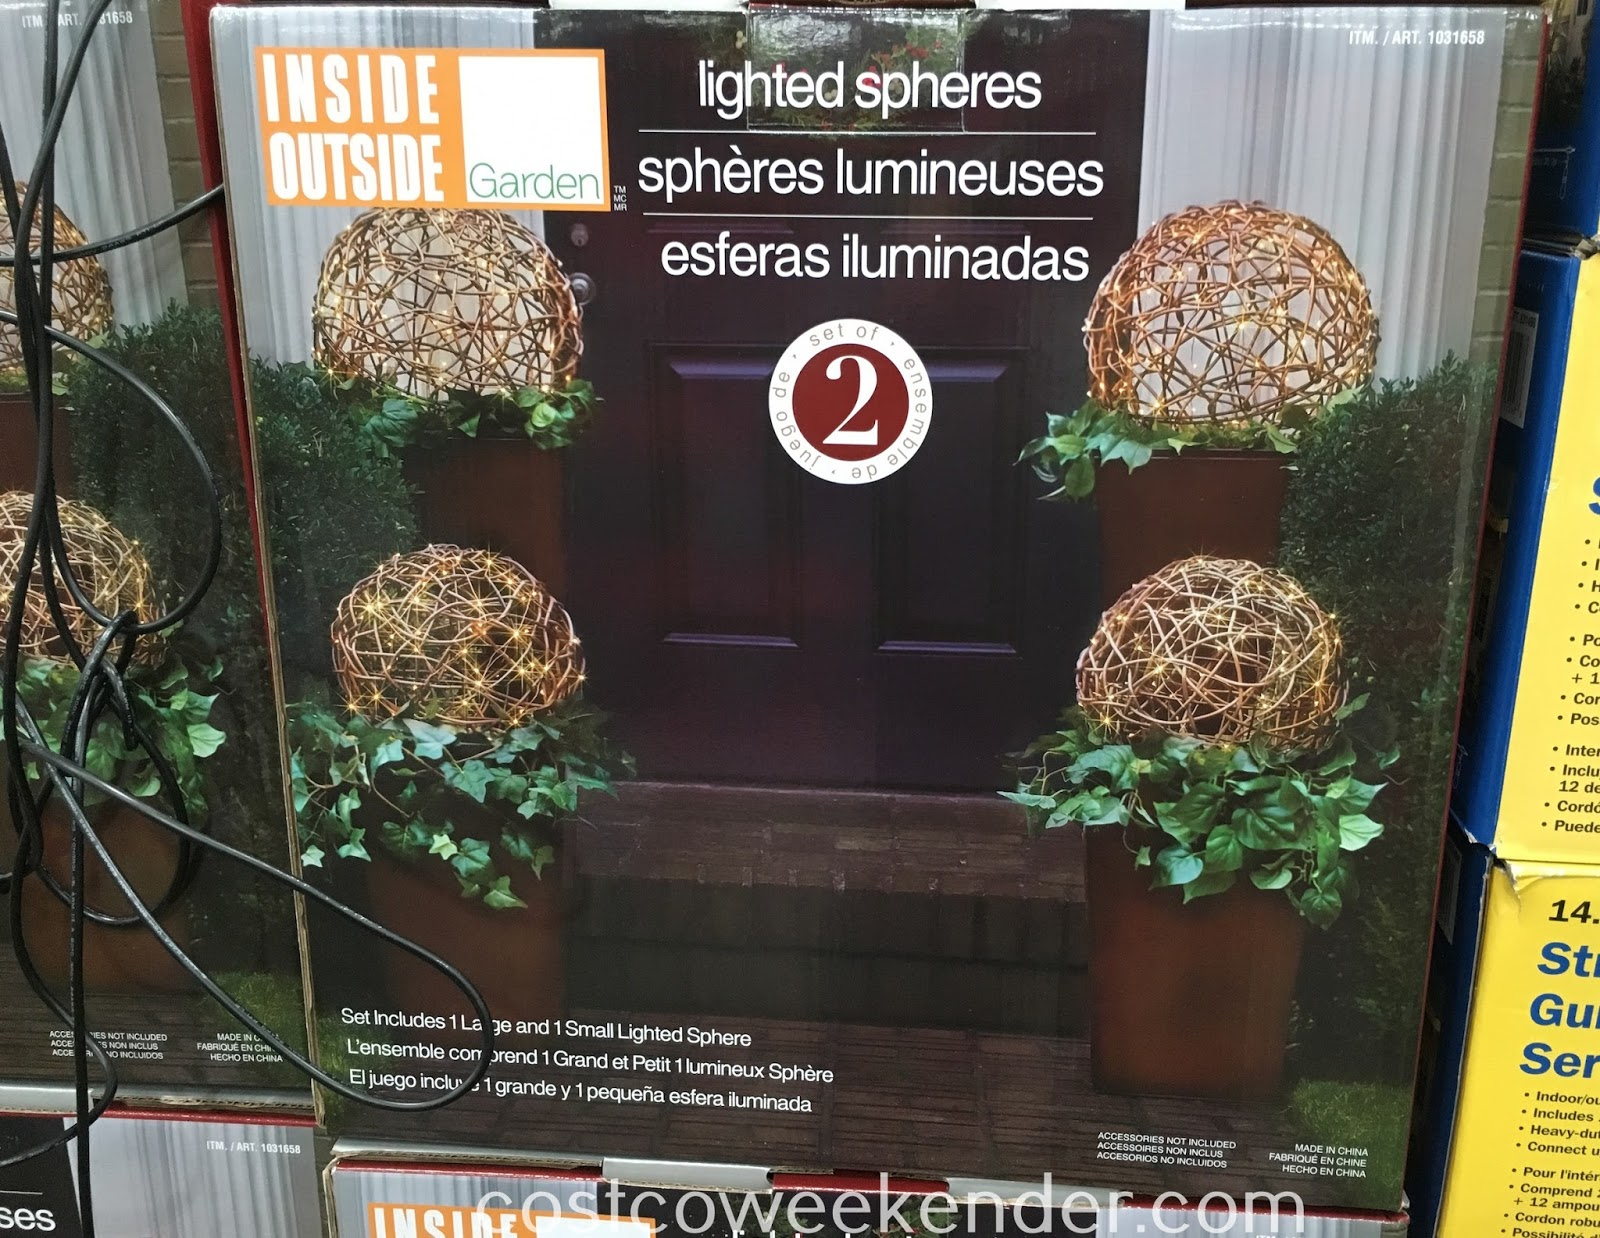 Add light and decor with Inside Outside Garden Lighted LED Spheres